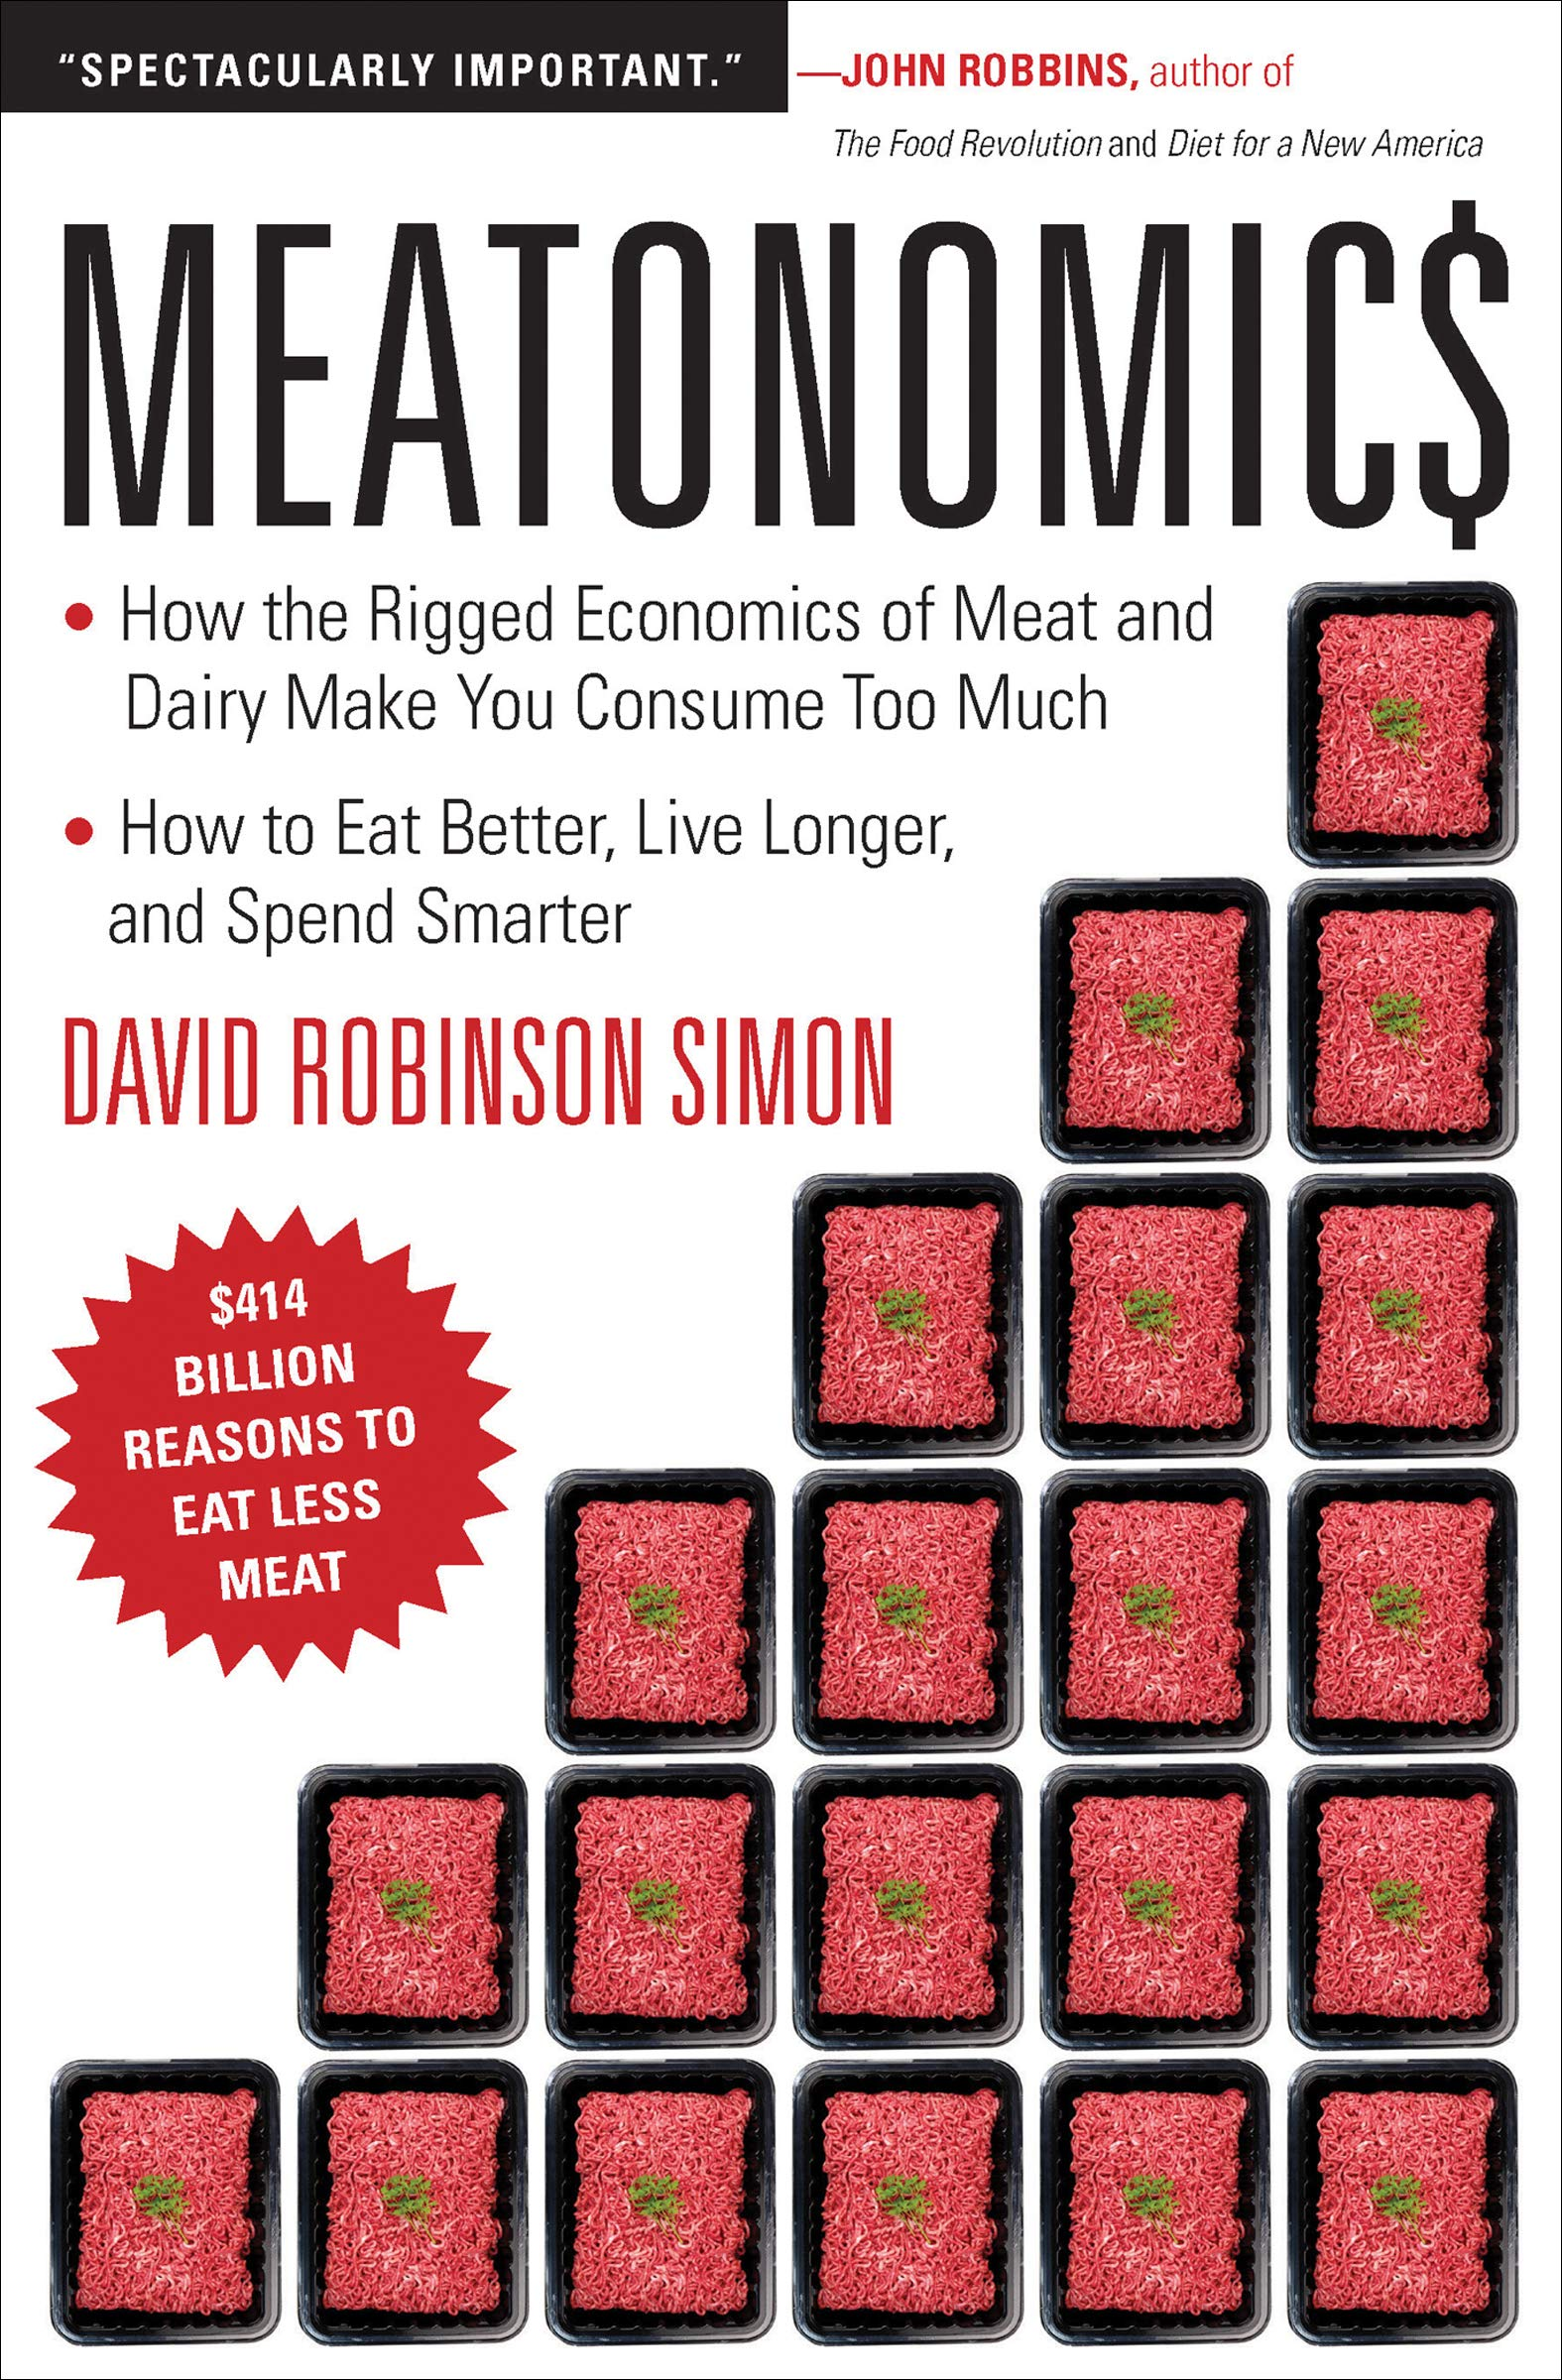 Meatonomics: How the Rigged Economics of Meat and Dairy Make You Consume Too Much And How to Eat Better, Live Longer, and Spend Smarter